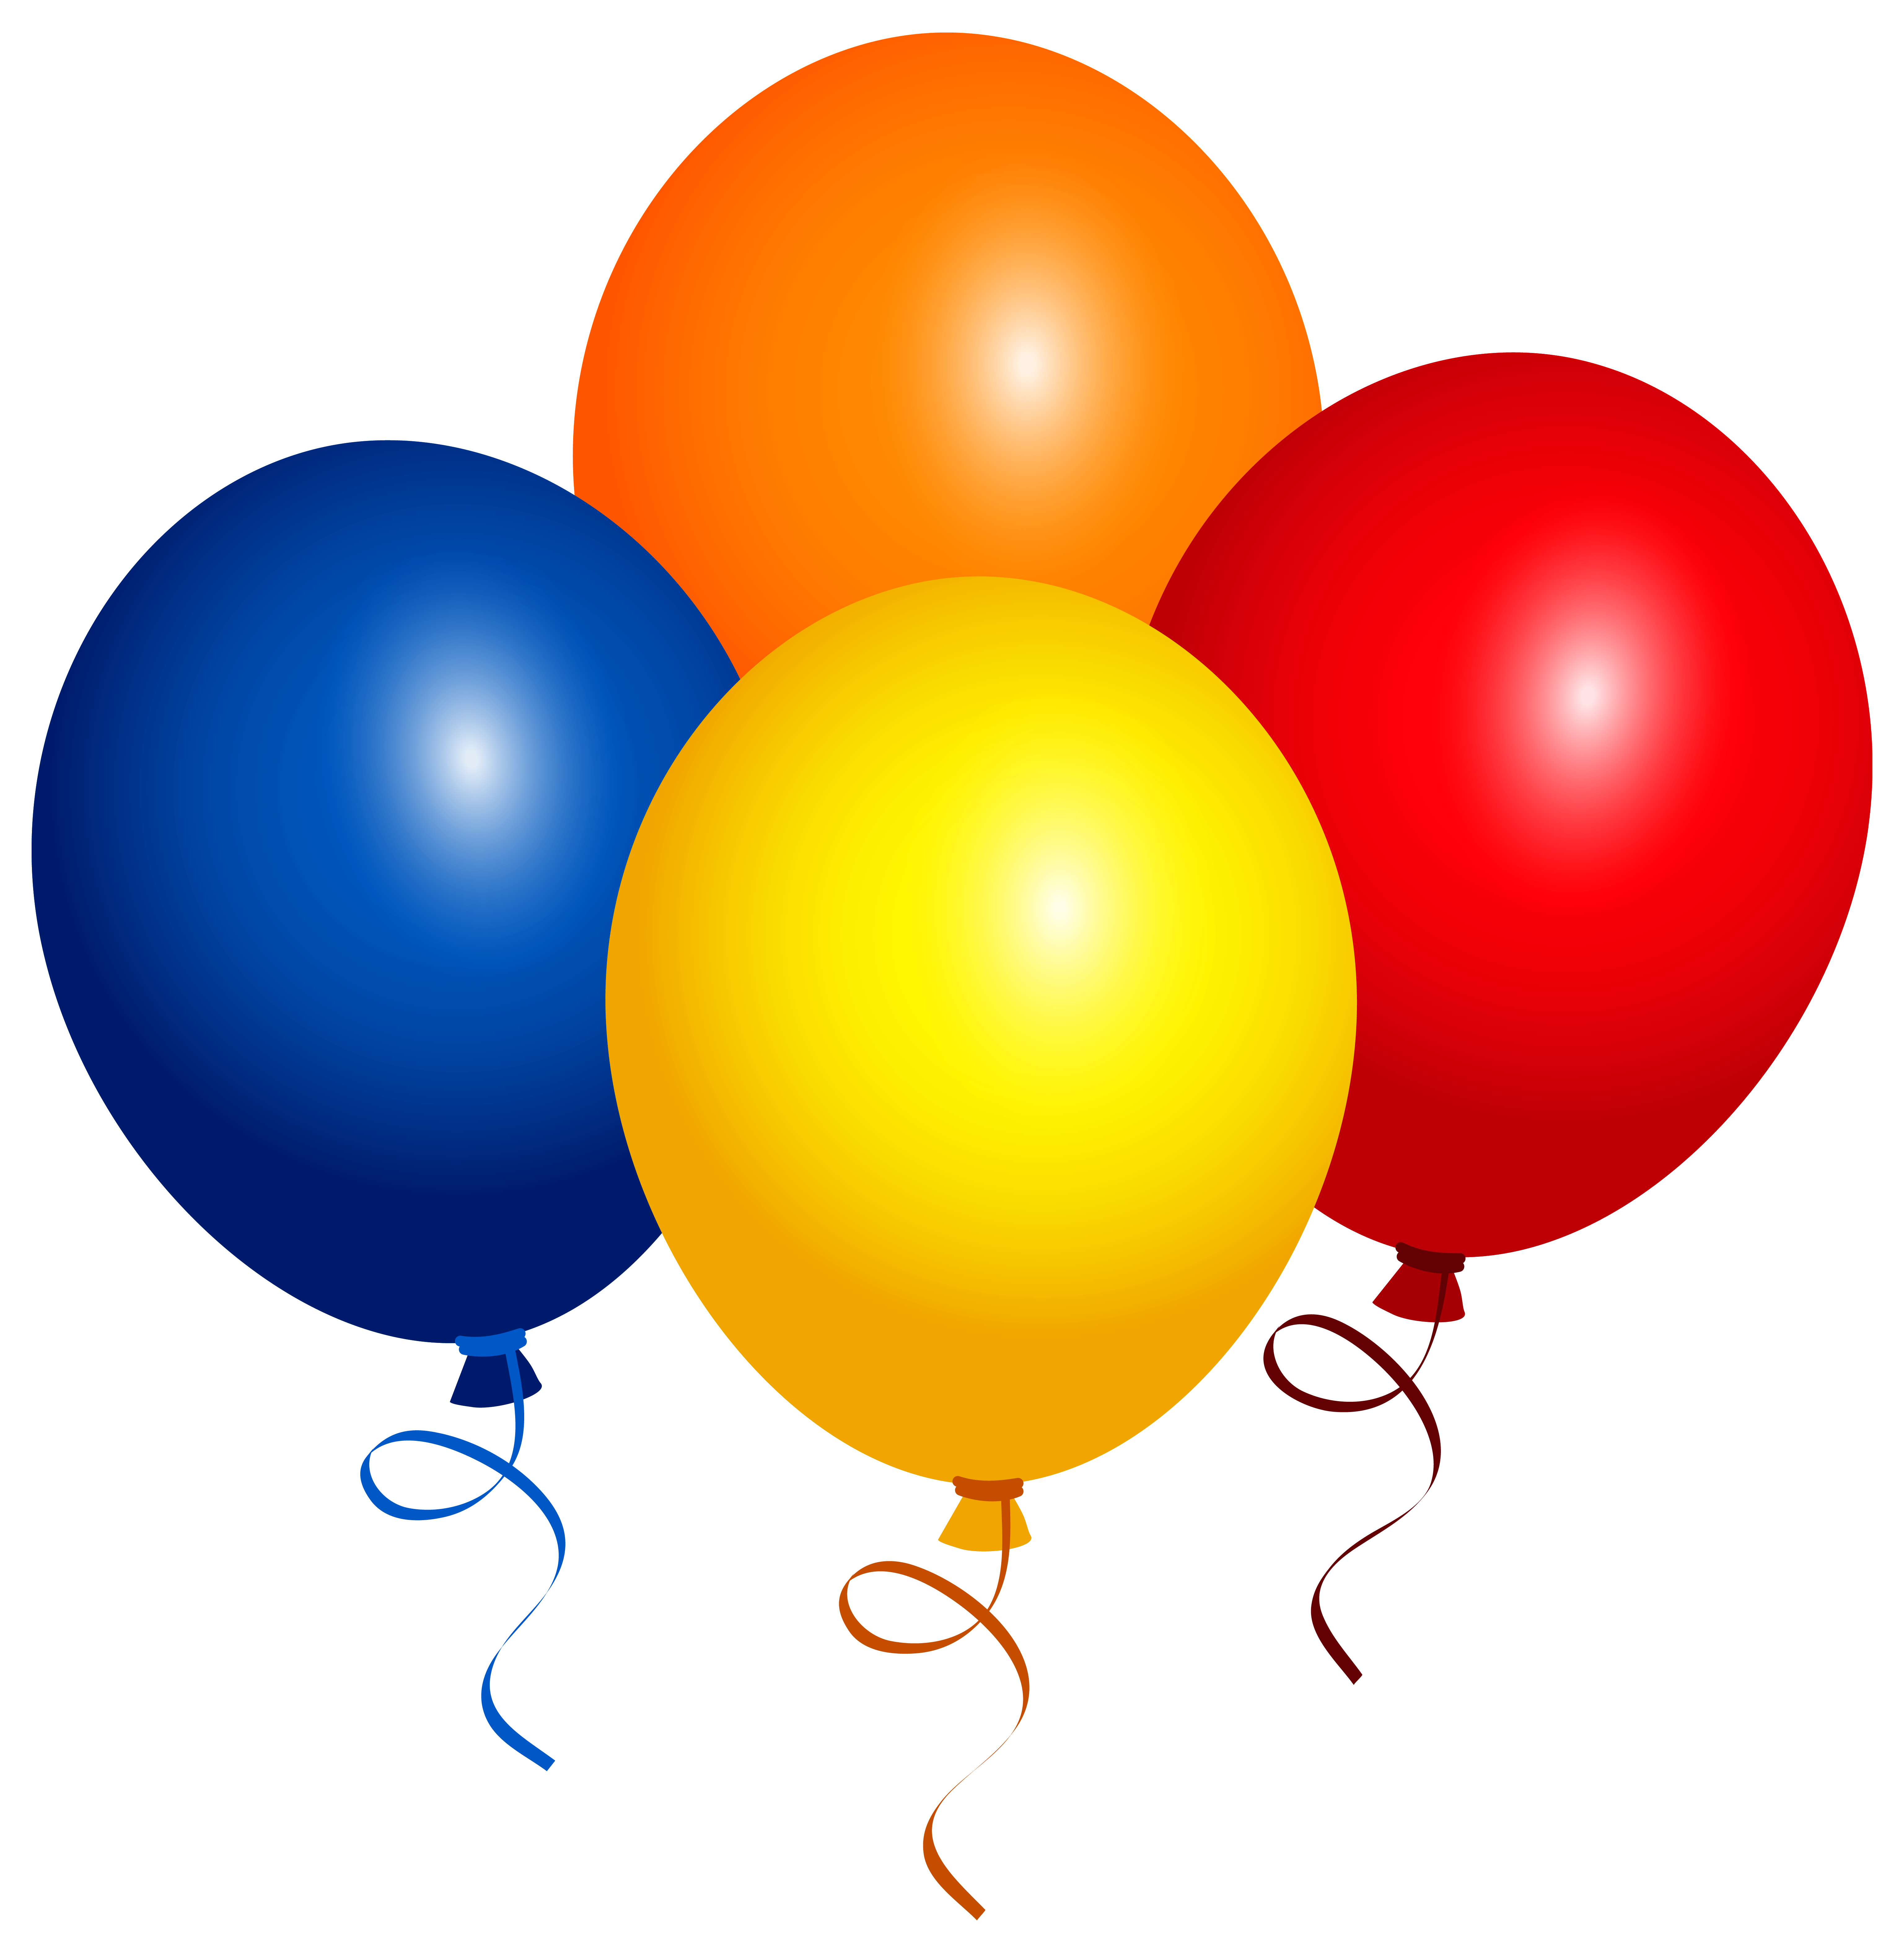 Four clipart birthday baloon. Balloons png image gallery